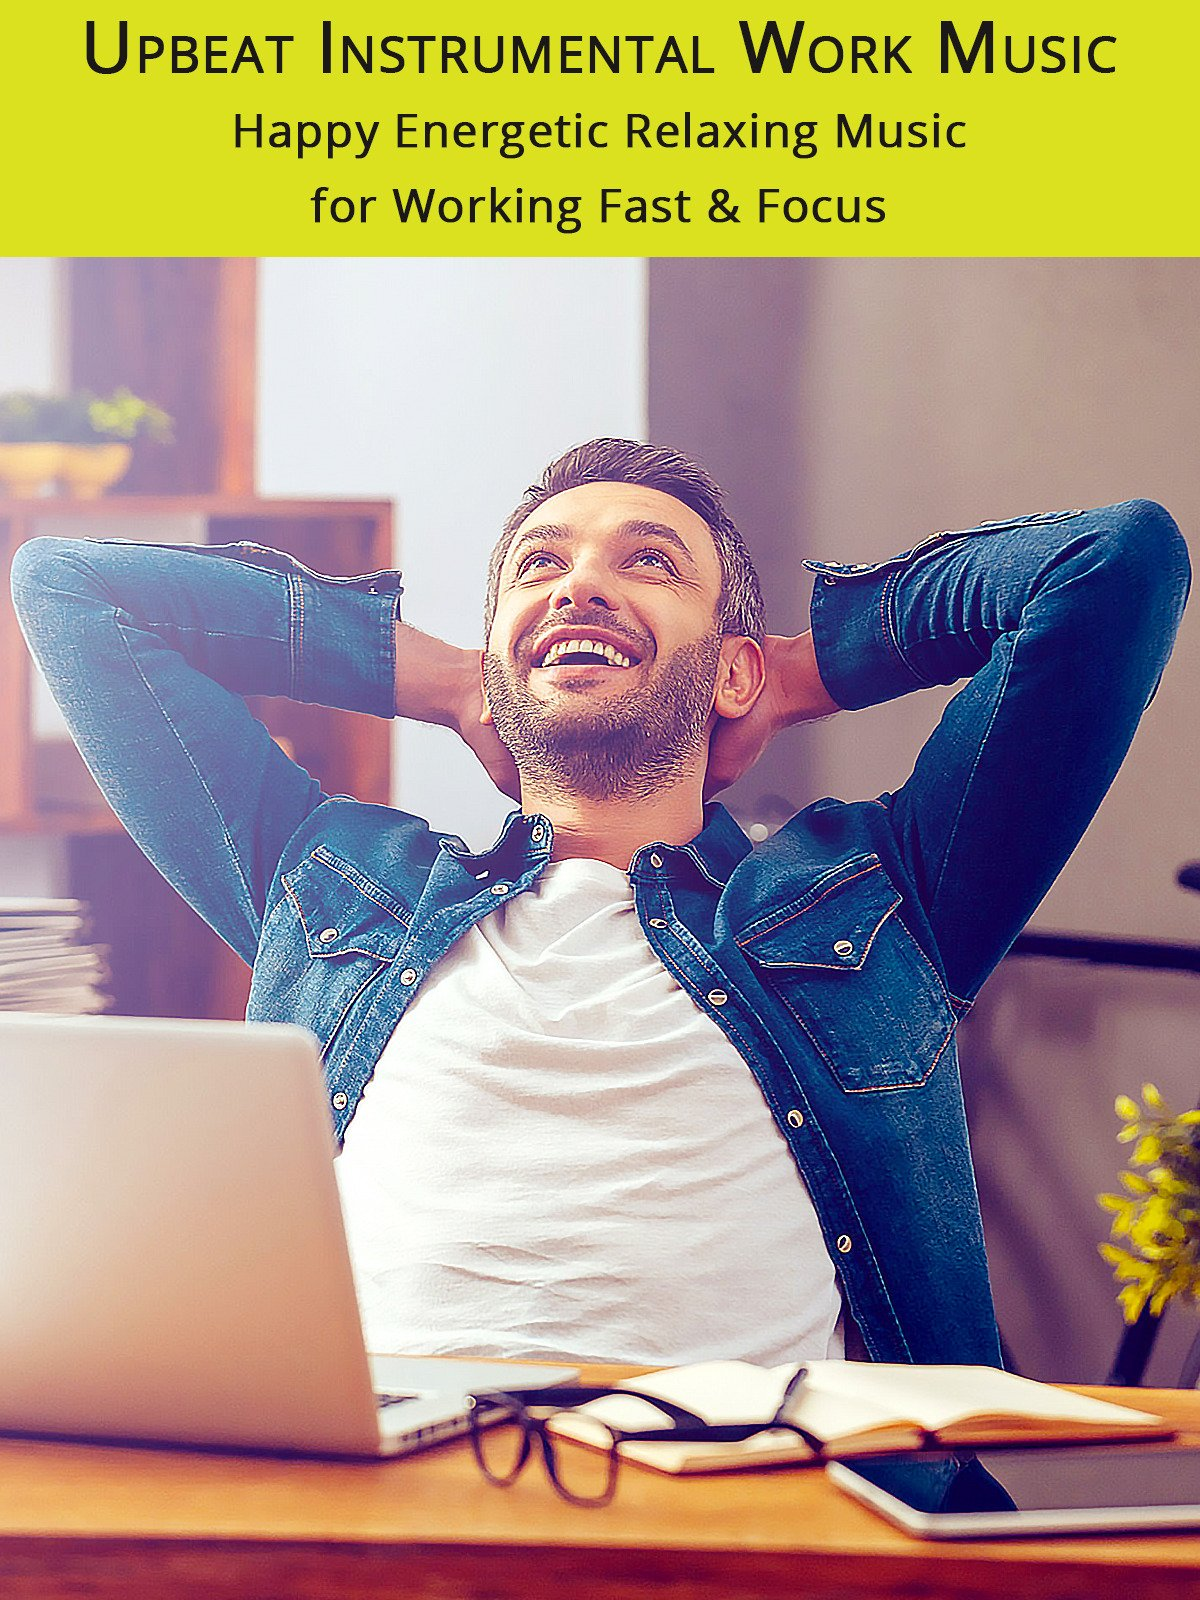 Upbeat Instrumental Work Music: Happy Energetic Relaxing Music for Working Fast & Focus